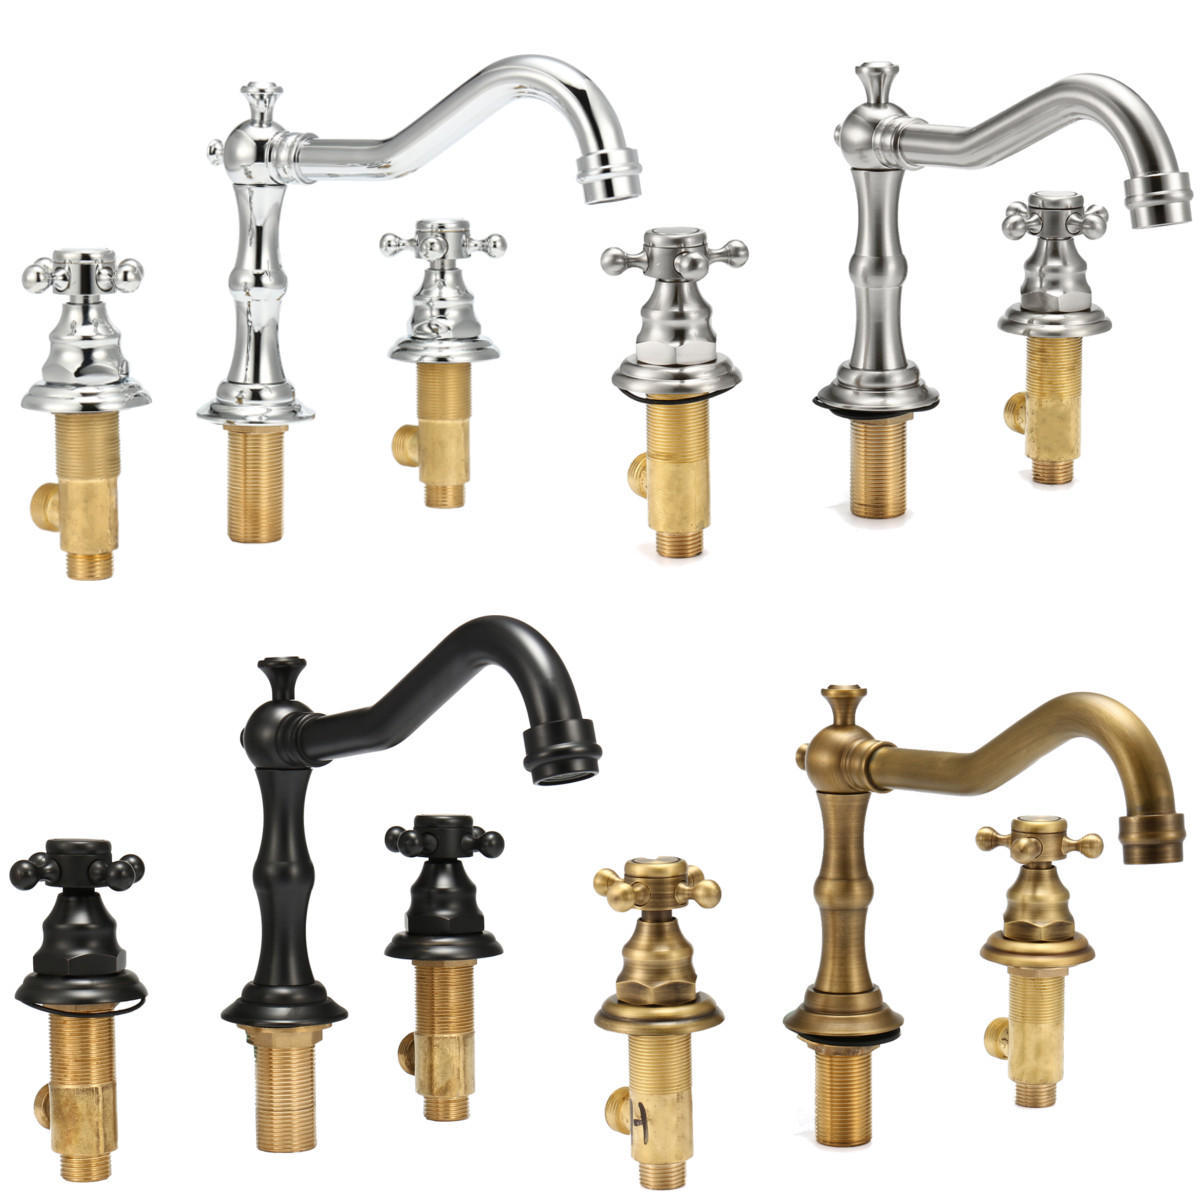 Antique 3 Holes 2 Knobs Tub Spout Basin Bathroom Sink Waterfall Faucet  Widespread Hot Cold Mixer